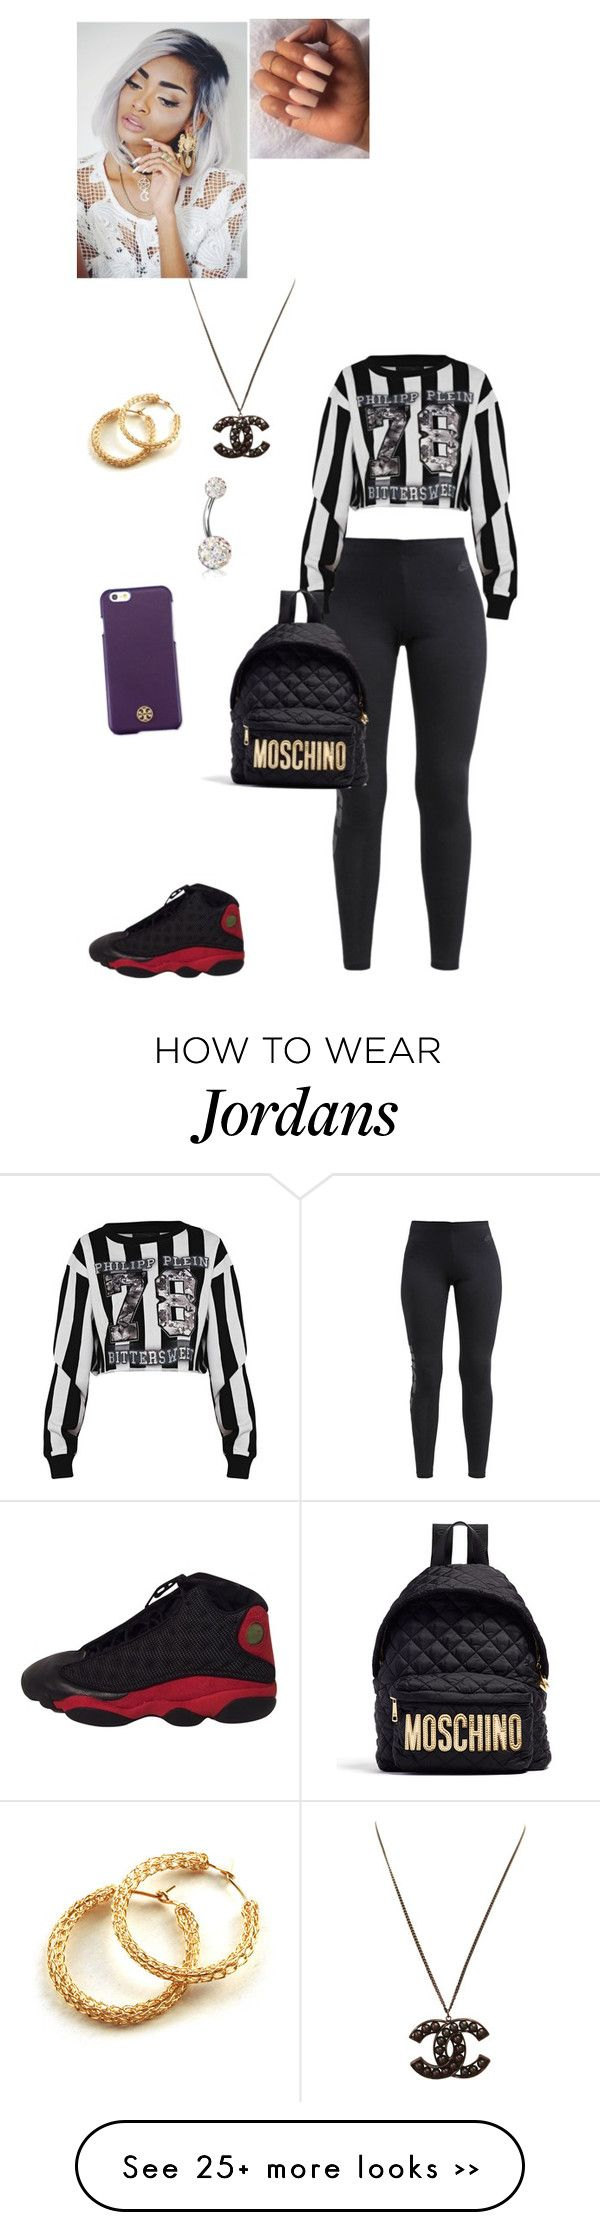 """Untitled #1032"" by danillove14 on Polyvore featuring NIKE, Philipp Plein, Bling Jewelry, Tory Burch and Moschino"